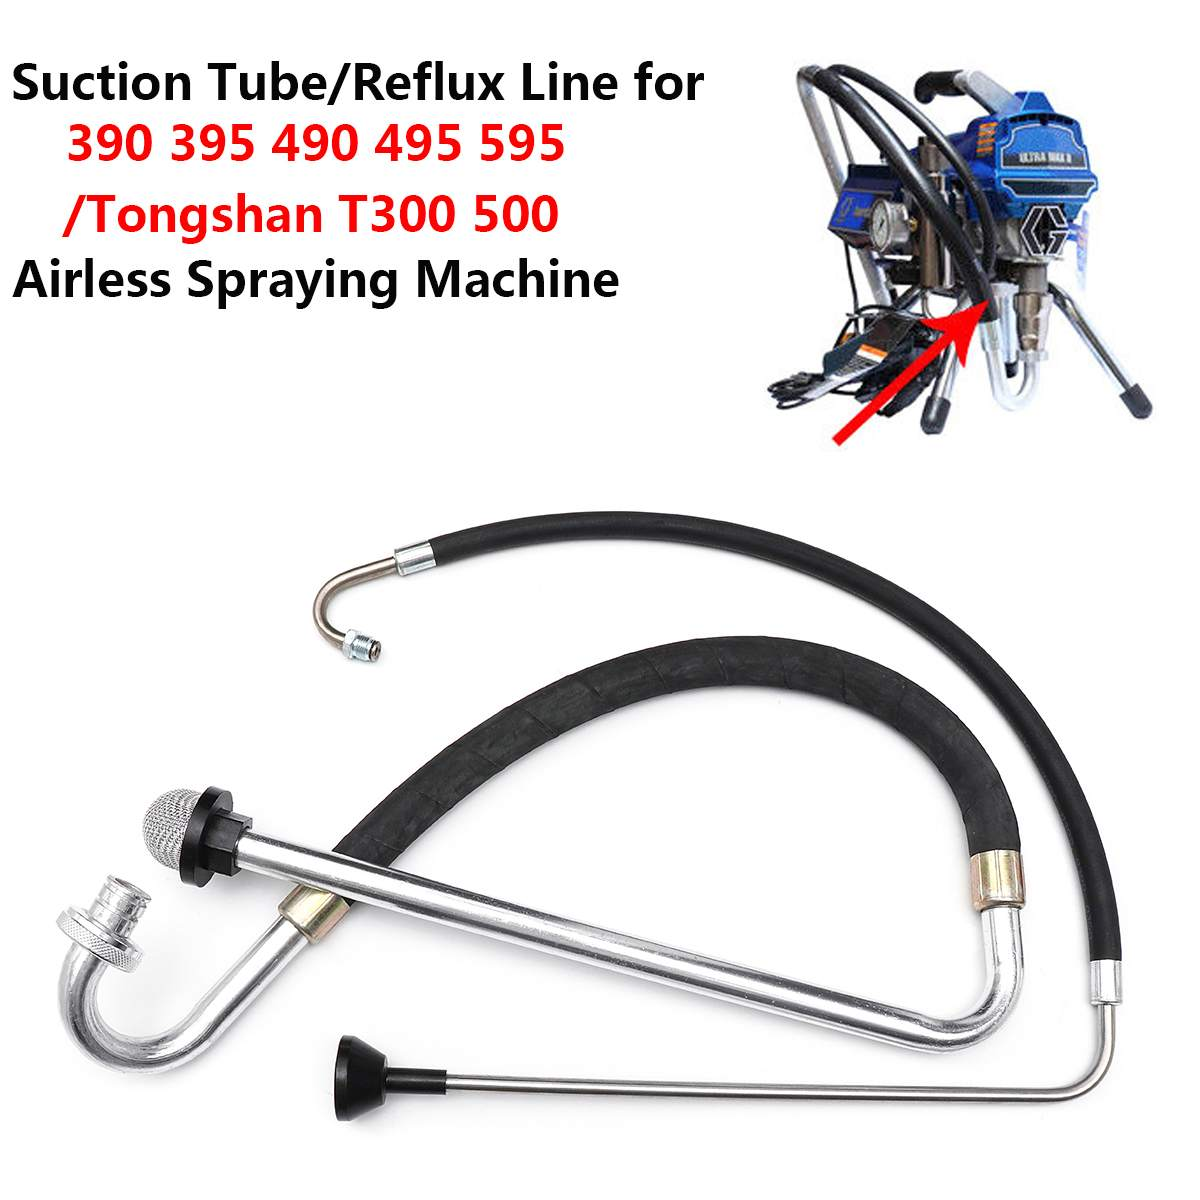 1pc Stainless Steel Suction Tube / Reflux Line For 390 395 490 Airless Spraying Machine Paint Sprayers Mayitr Tool Parts1pc Stainless Steel Suction Tube / Reflux Line For 390 395 490 Airless Spraying Machine Paint Sprayers Mayitr Tool Parts